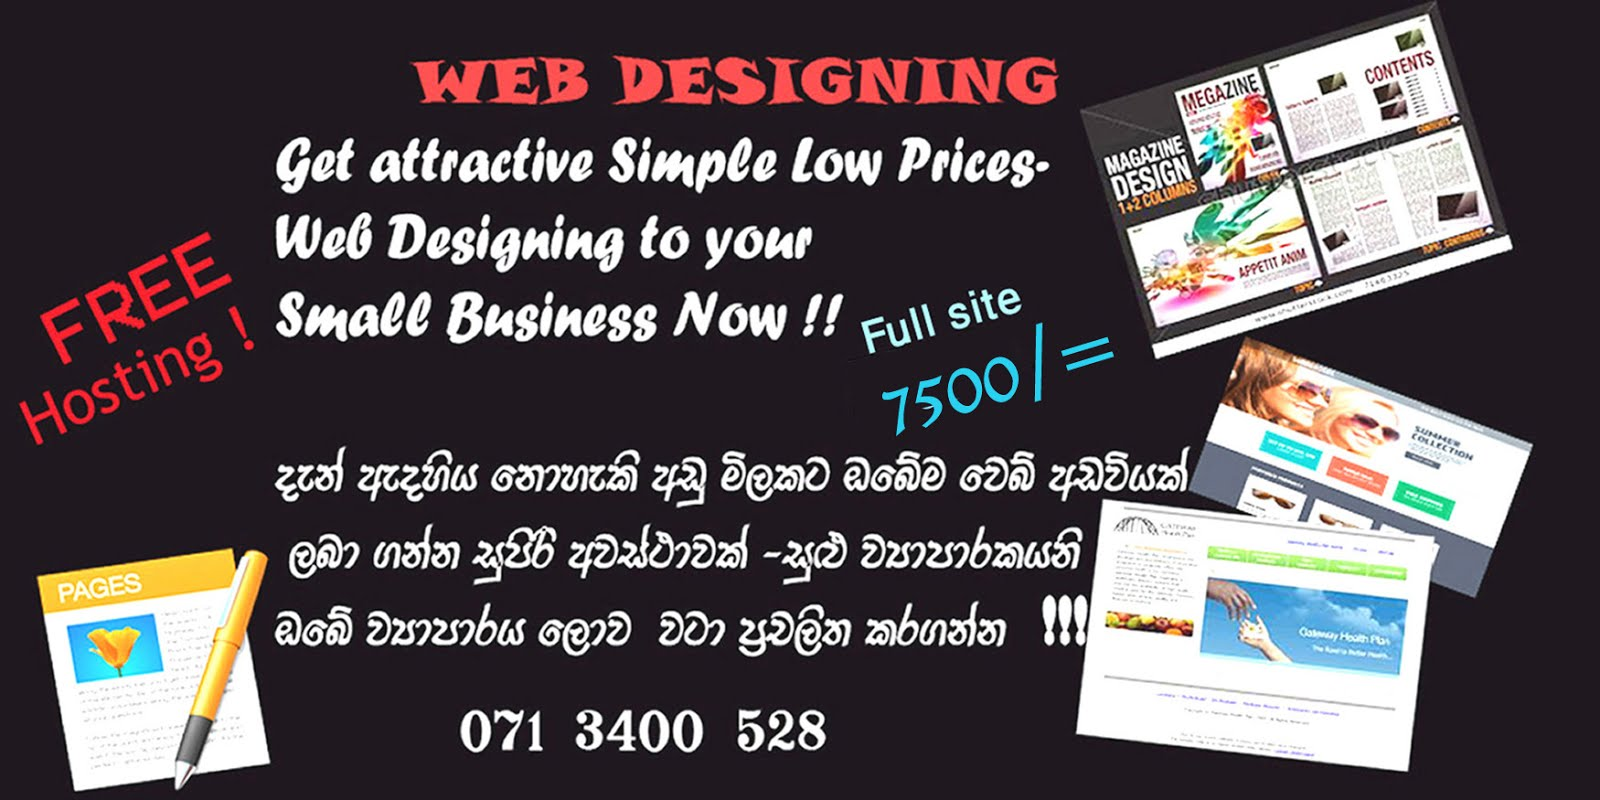 WEB DESIGNING FOR LOWEST PRICES...!!